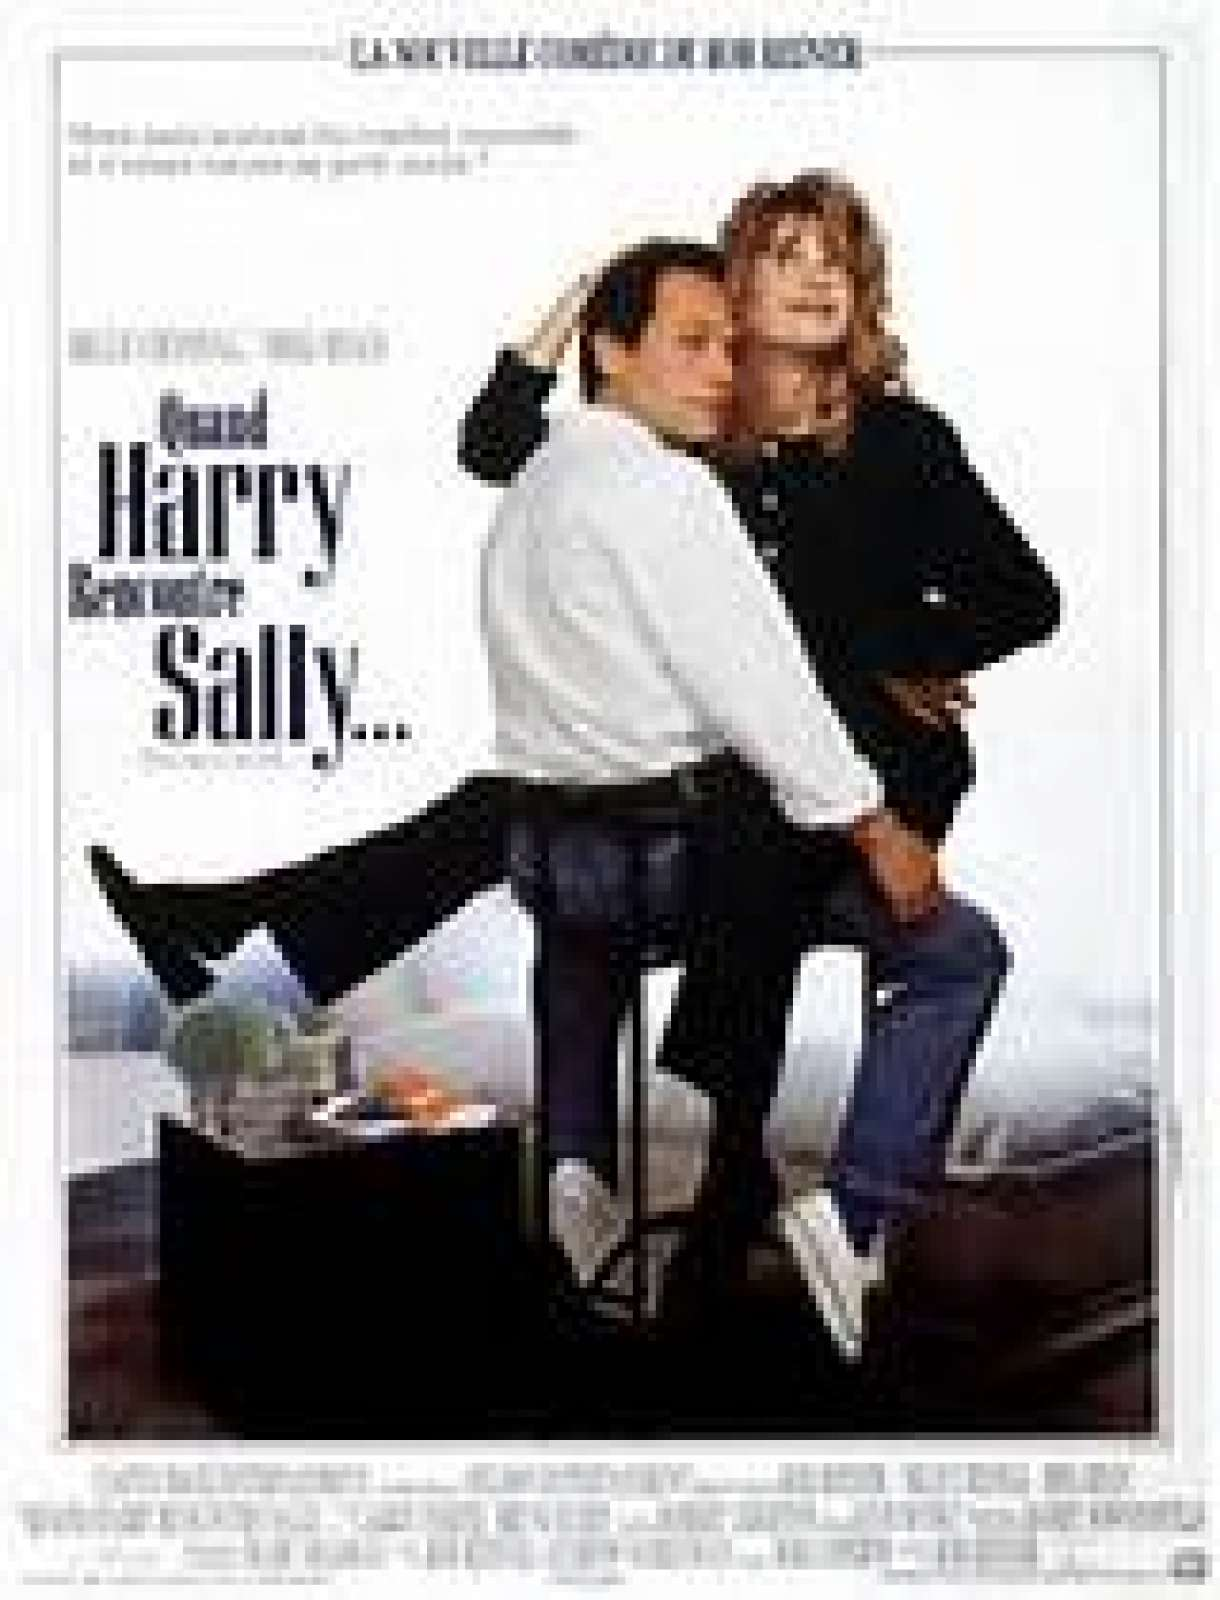 Citation quand harry rencontre sally